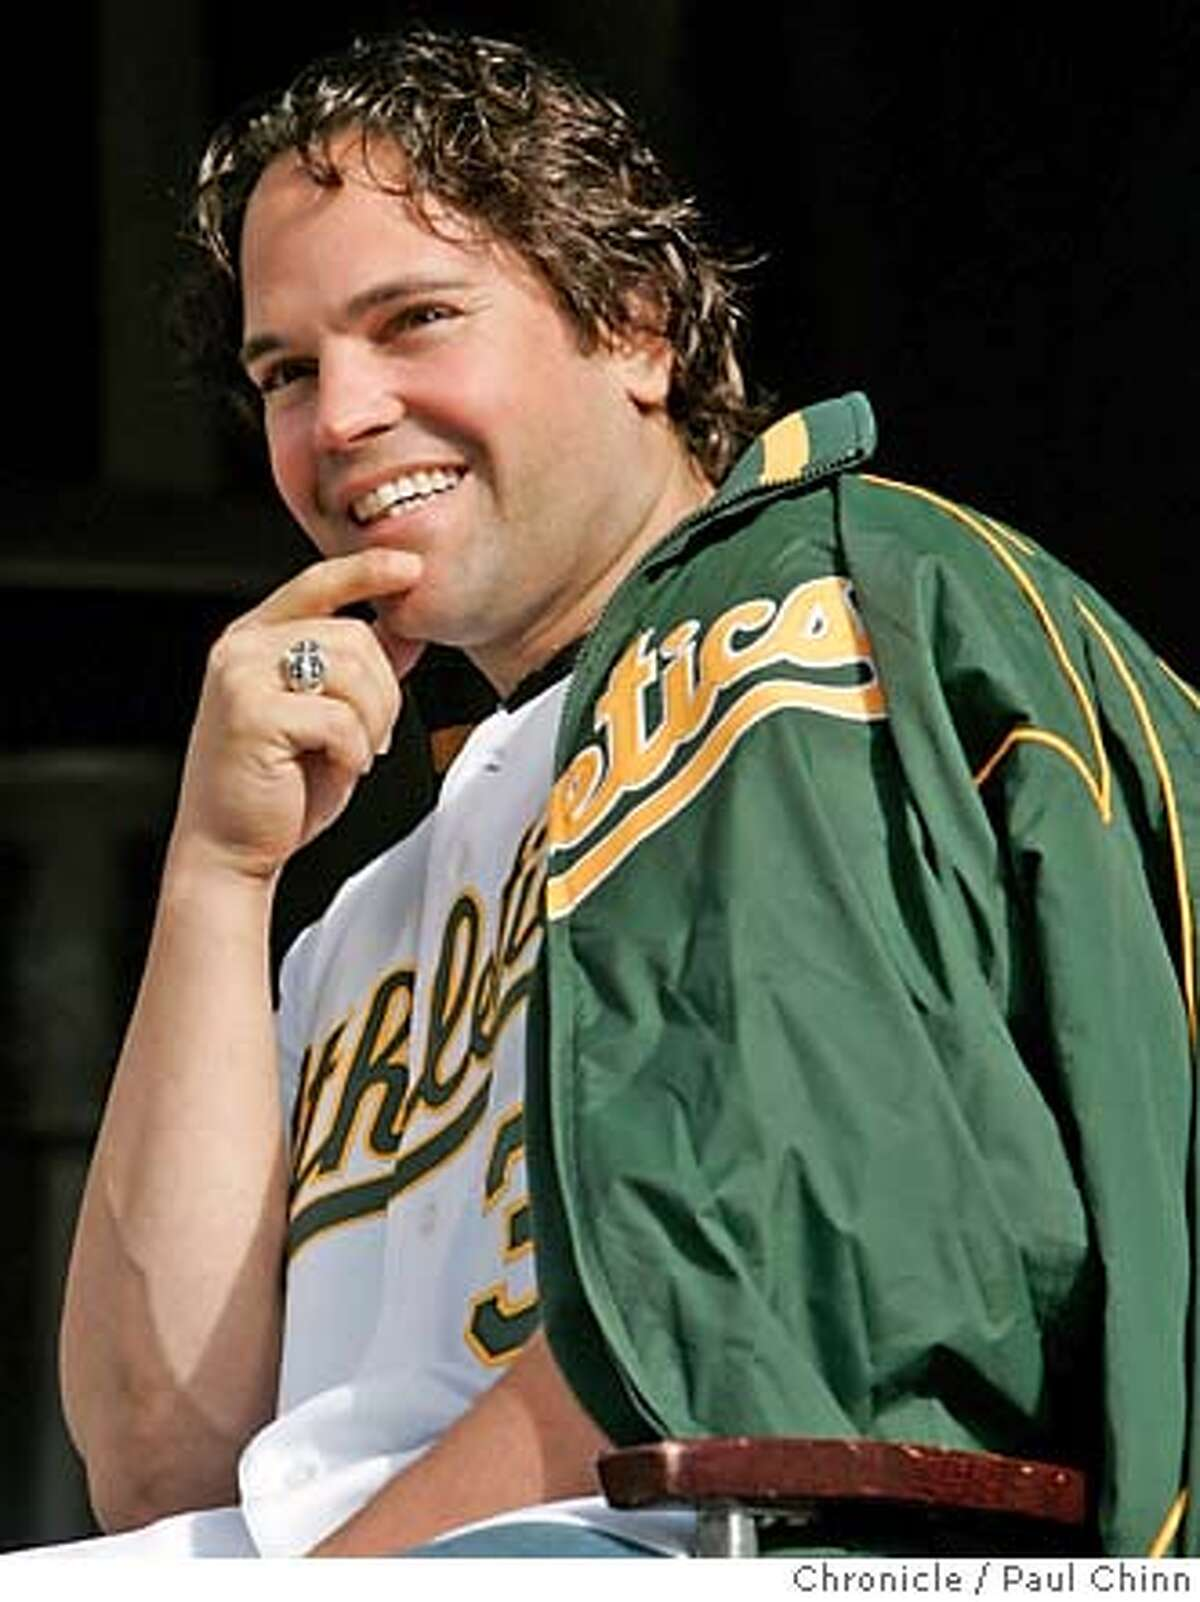 Mike Piazza, the team's new designated hitter, charms the fans during a Q & A session at the Oakland A's Fanfest event at McAfee Coliseum in Oakland, Calif. on Saturday, Jan. 27, 2007. PAUL CHINN/The Chronicle **Mike Piazza fanfest28 MANDATORY CREDIT FOR PHOTOGRAPHER AND S.F. CHRONICLE/NO SALES - MAGS OUT